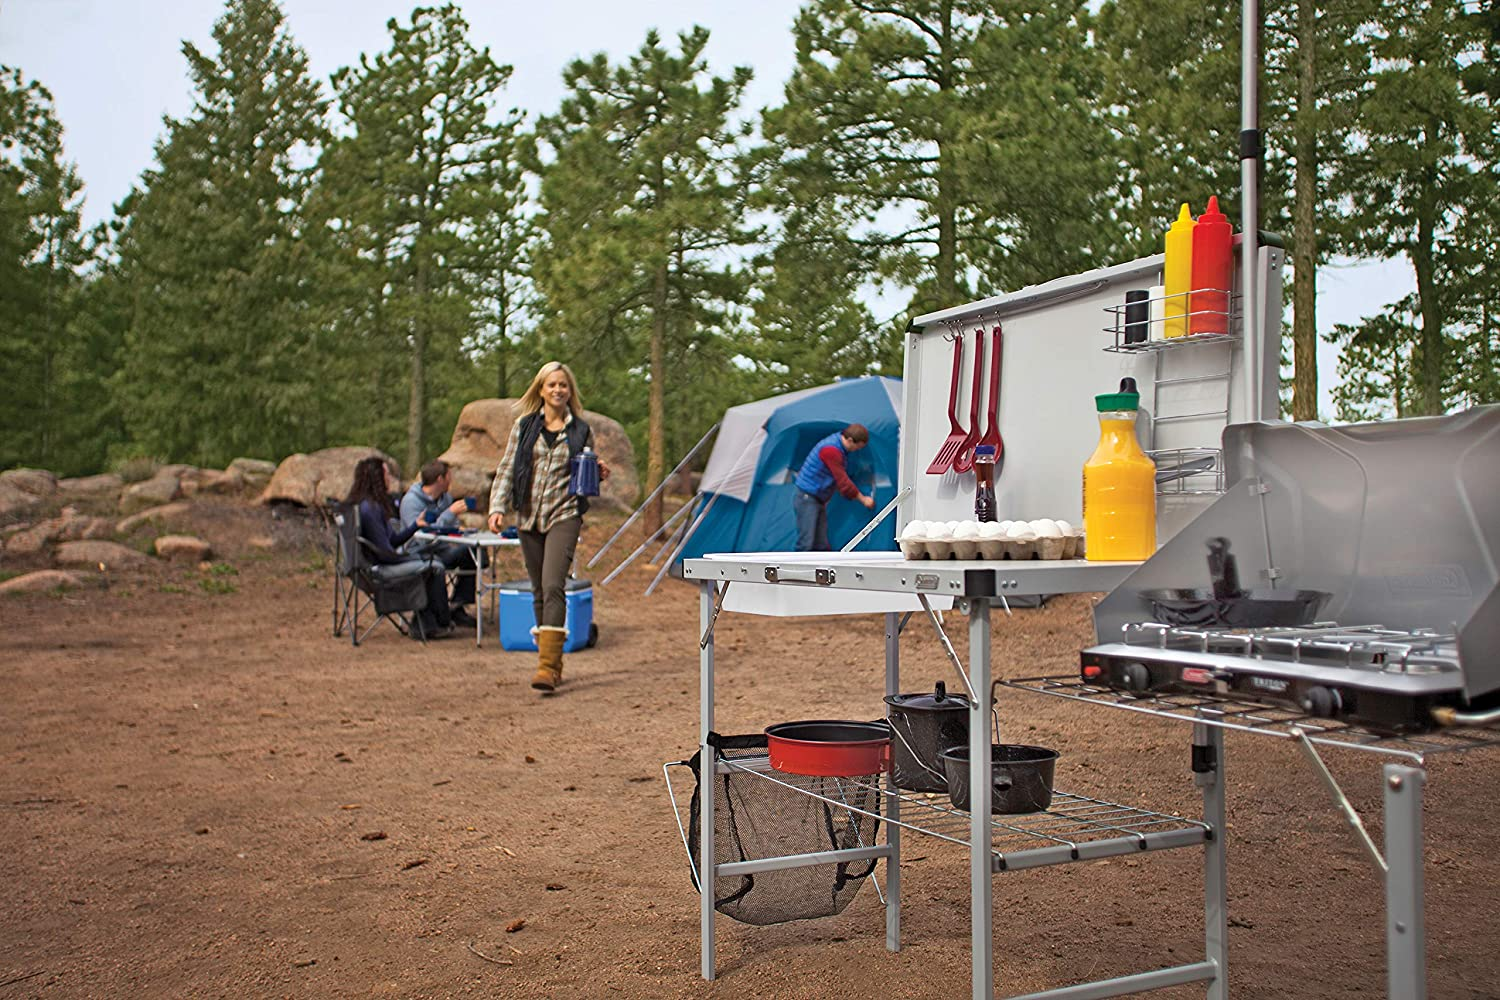 Pack-Away Campfire Kitchen made our list of Campfire Cooking Equipment You Can't Live Without with the best tools, accessories, utensils and cookware for your camp cooking creations!